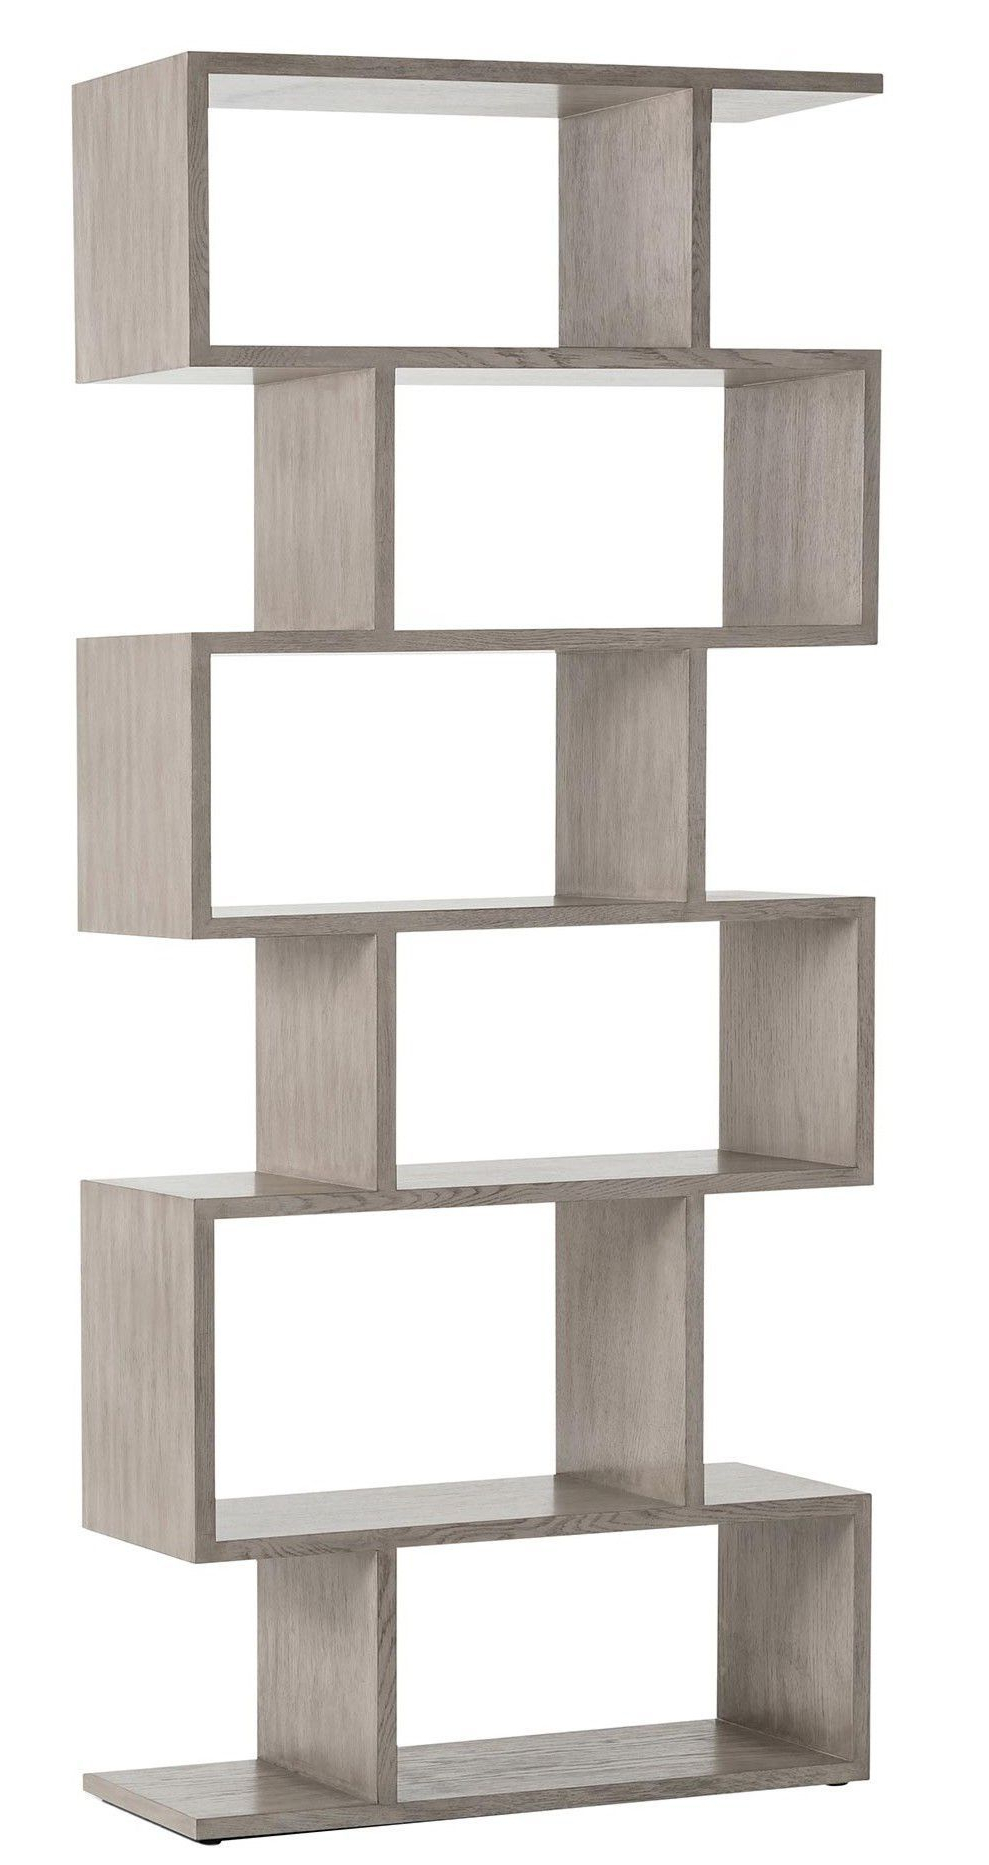 Ansley Geometric Bookcases Regarding Most Popular This Contemporary Wood Bookshelf Adds Instant Style Points (View 2 of 20)